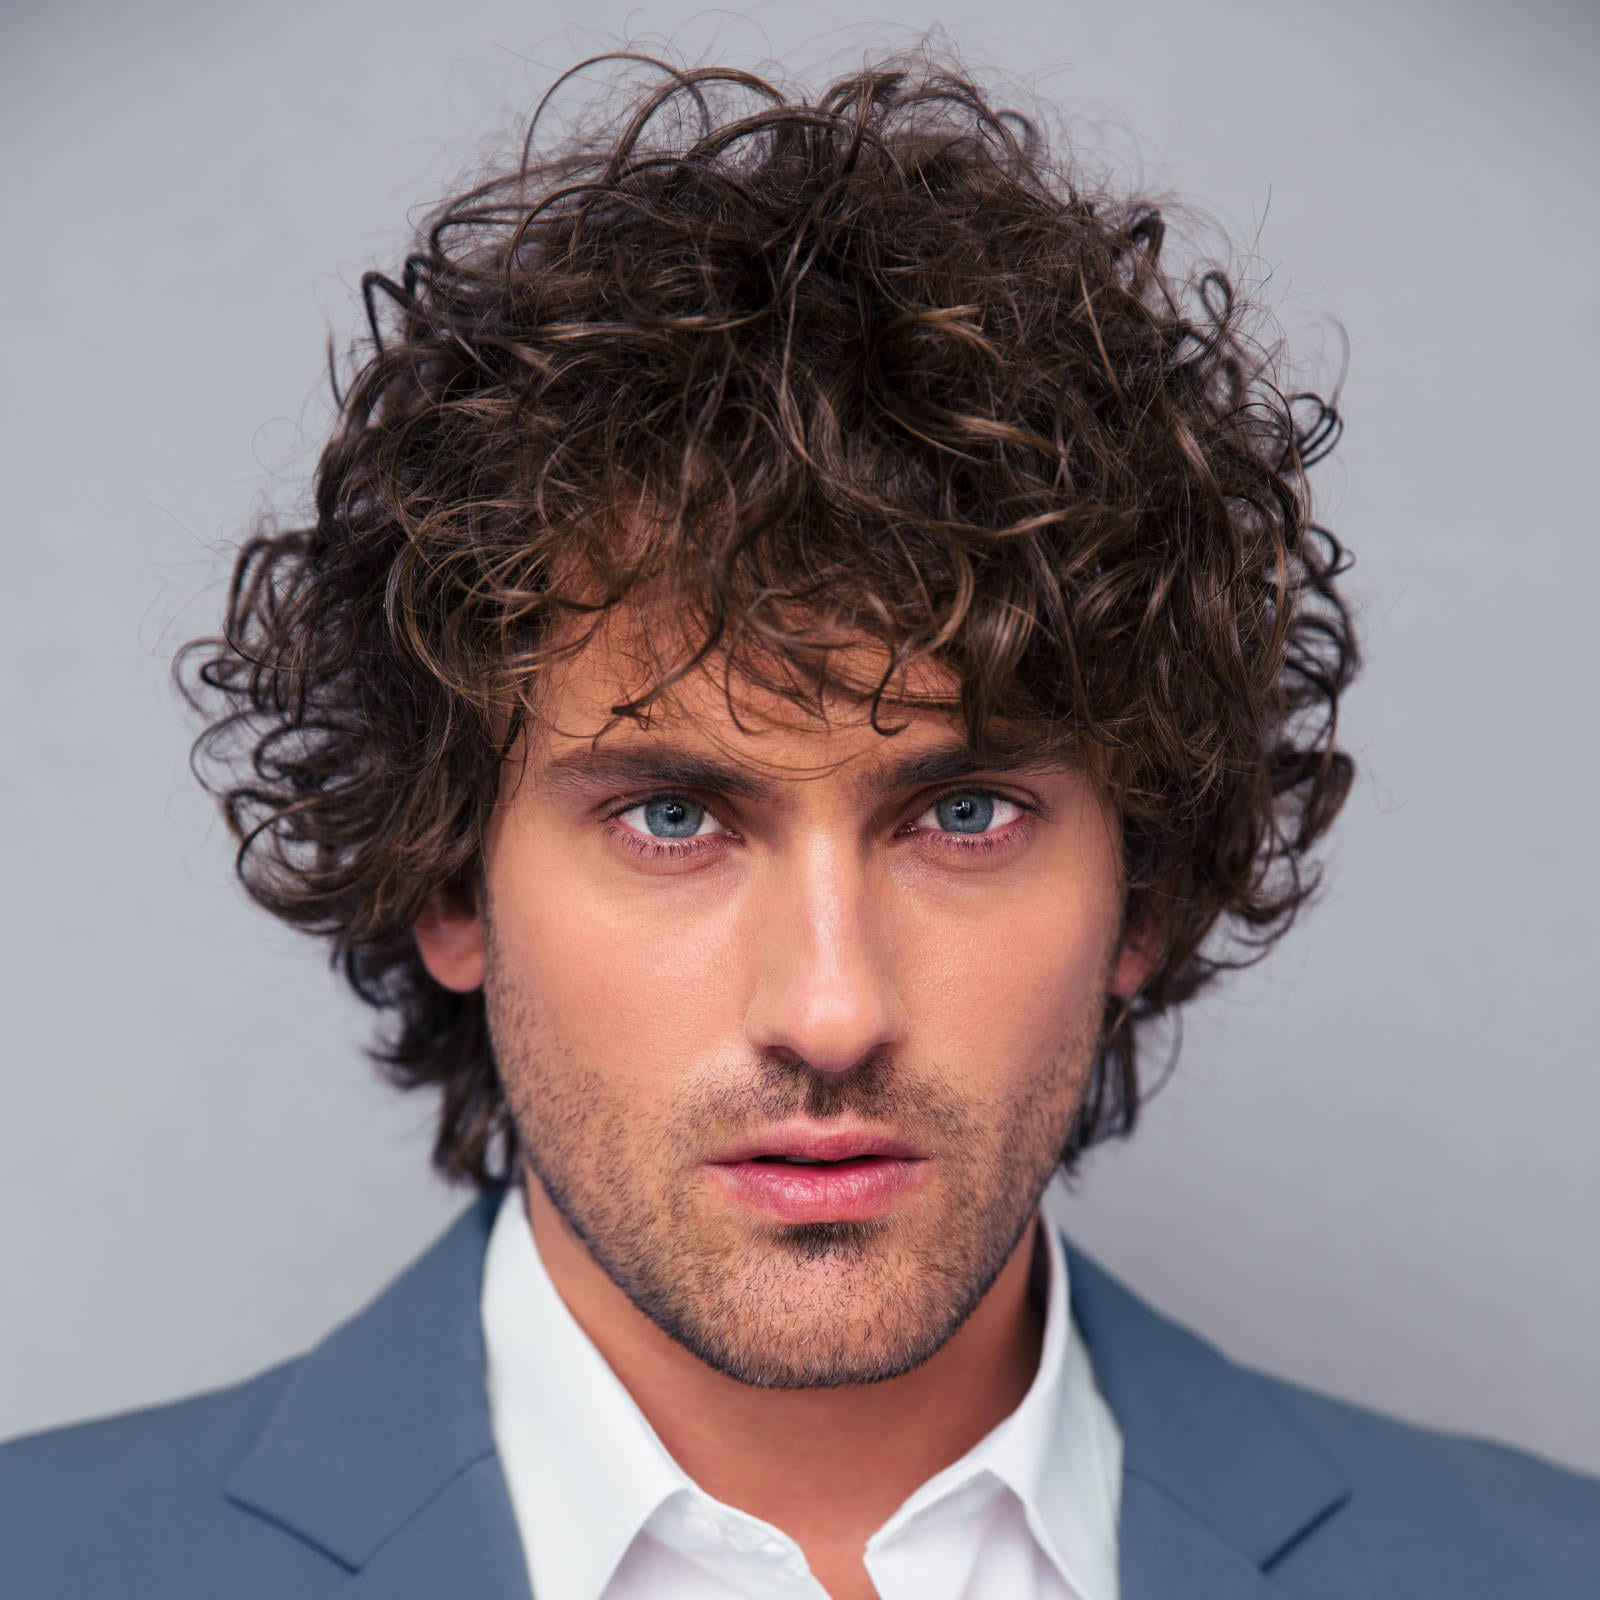 Best ideas about Curly Haircuts Men . Save or Pin 40 Modern Men s Hairstyles for Curly Hair That Will Now.